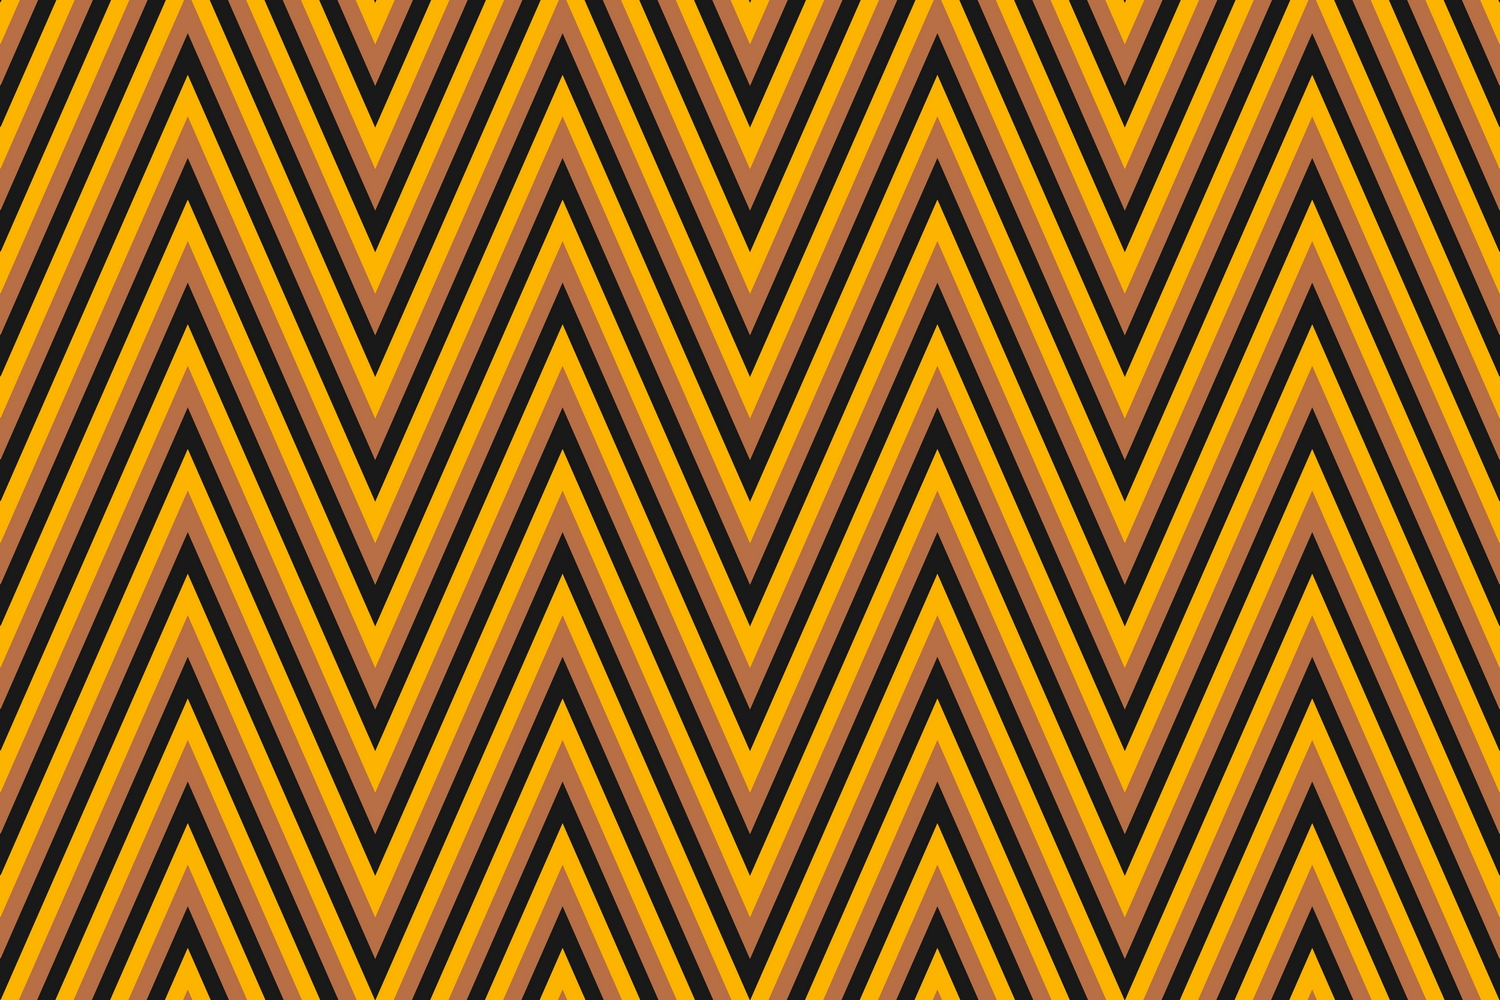 50 colorful chevron backgrounds (AI, EPS, JPG 5000x5000) example image 2